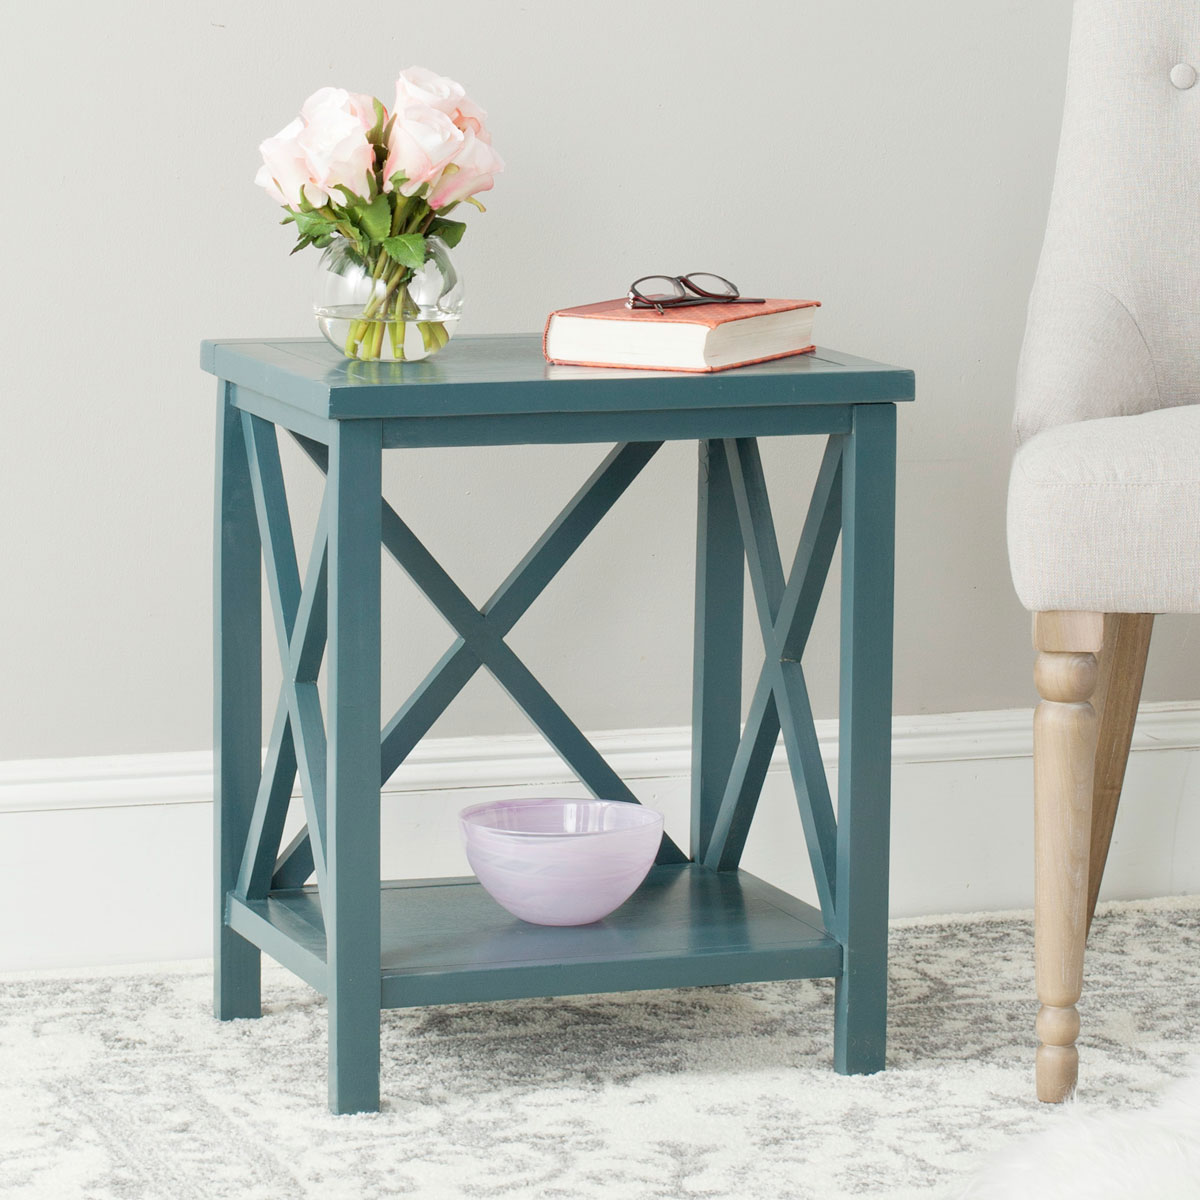 Popular AMH6523F Accent Tables, Storage Furniture - Furniture by Safavieh ZW56